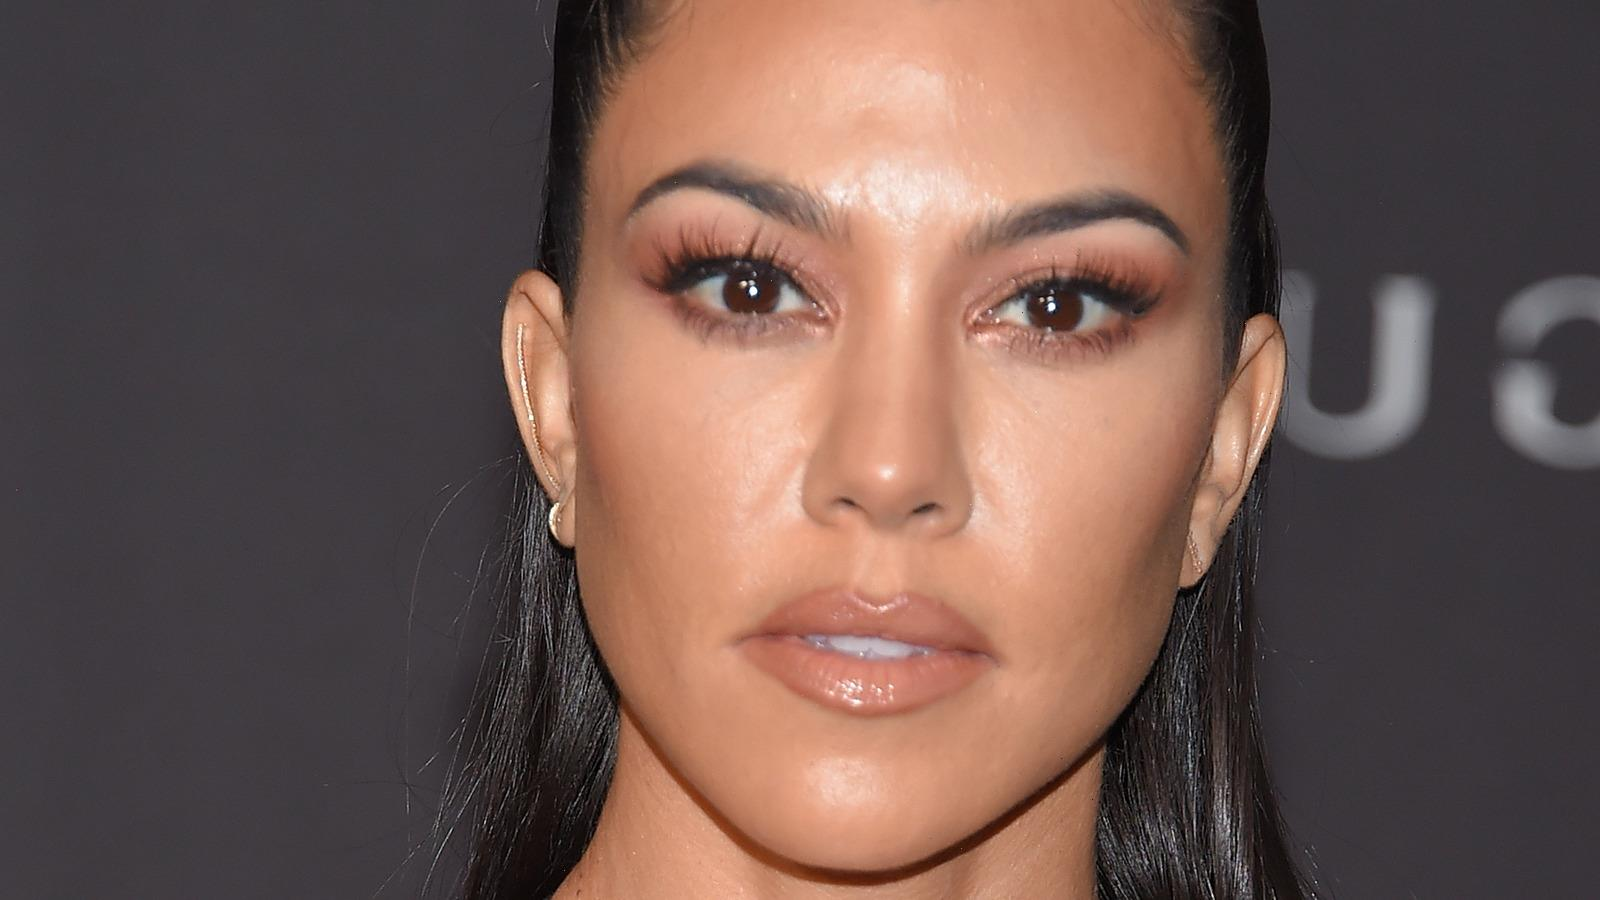 The Keeping Up With The Kardashians Moment Nearly 50% People Think Crossed The Line